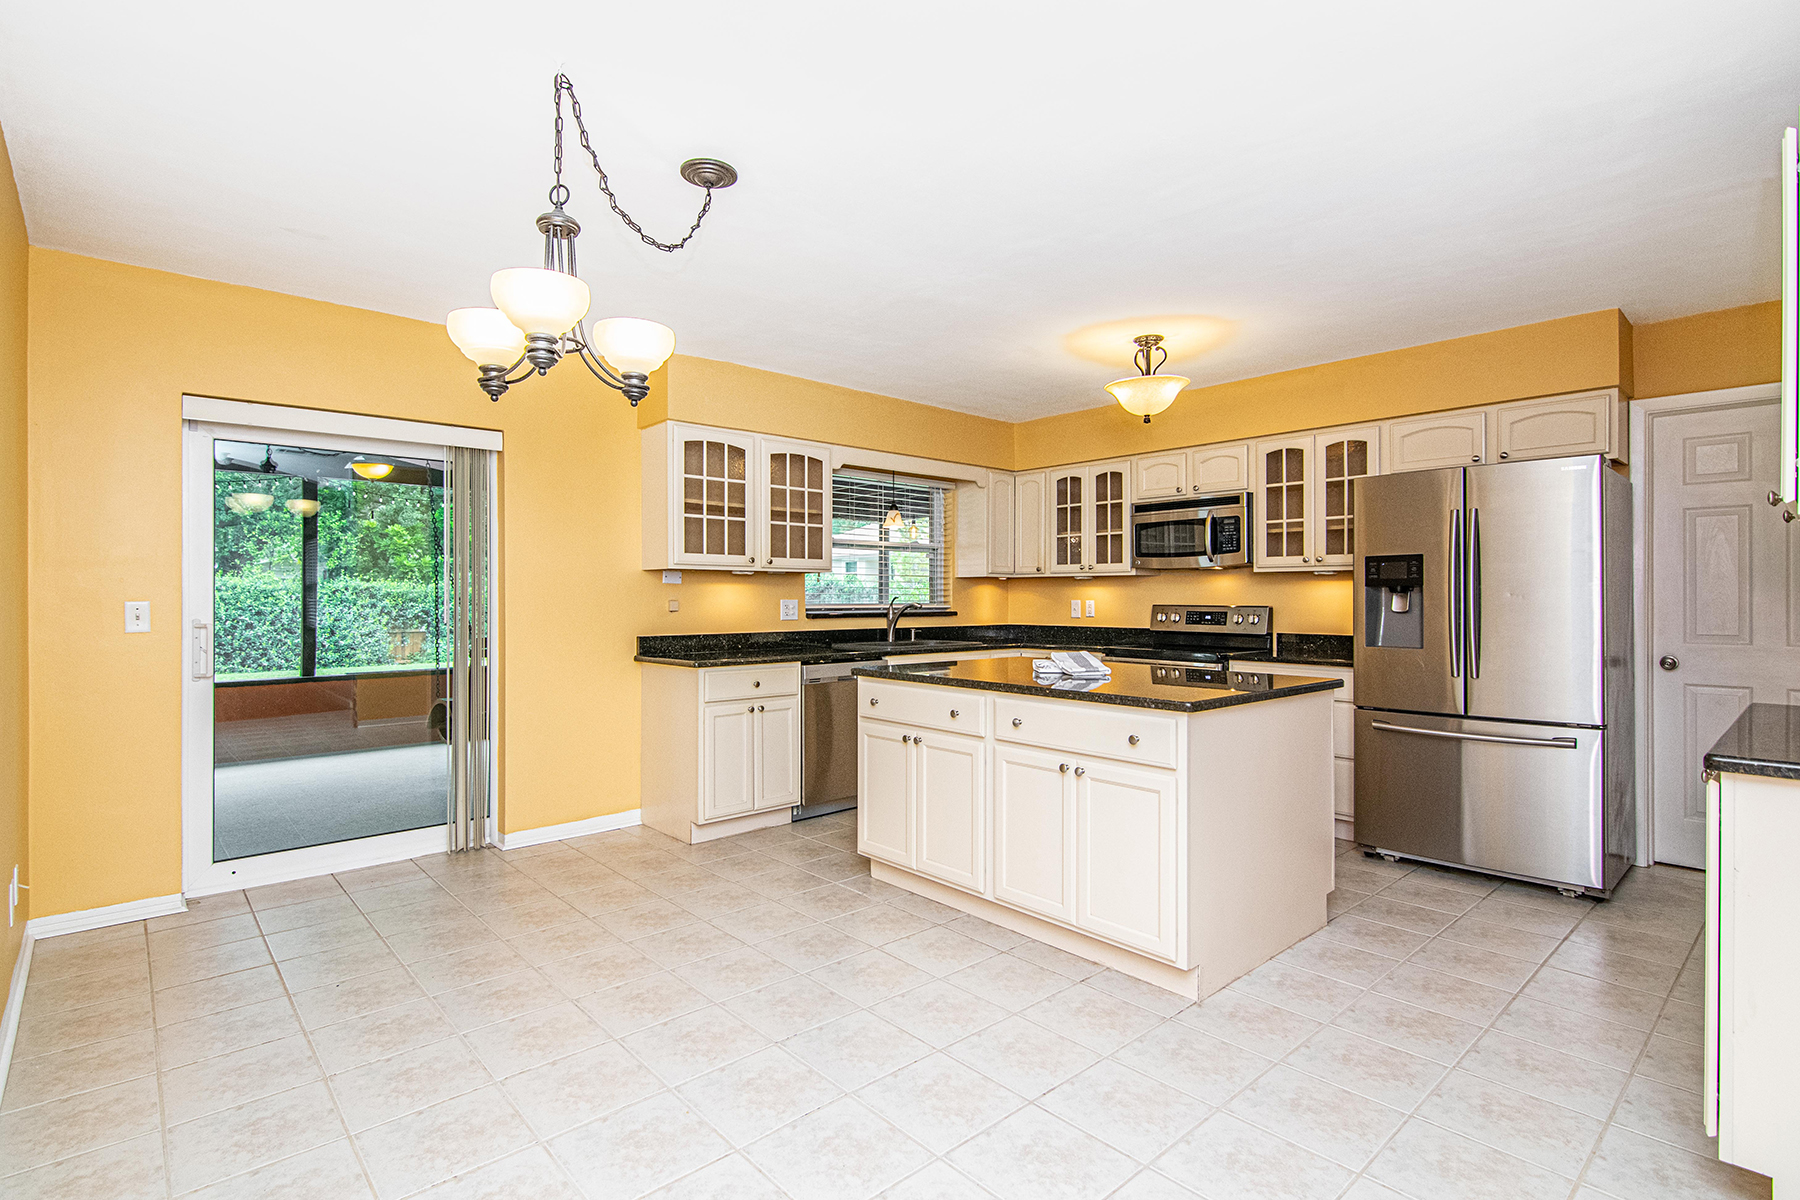 Additional photo for property listing at 636 Atwood Ave N, St. Petersburg, Florida 33702 Vereinigte Staaten